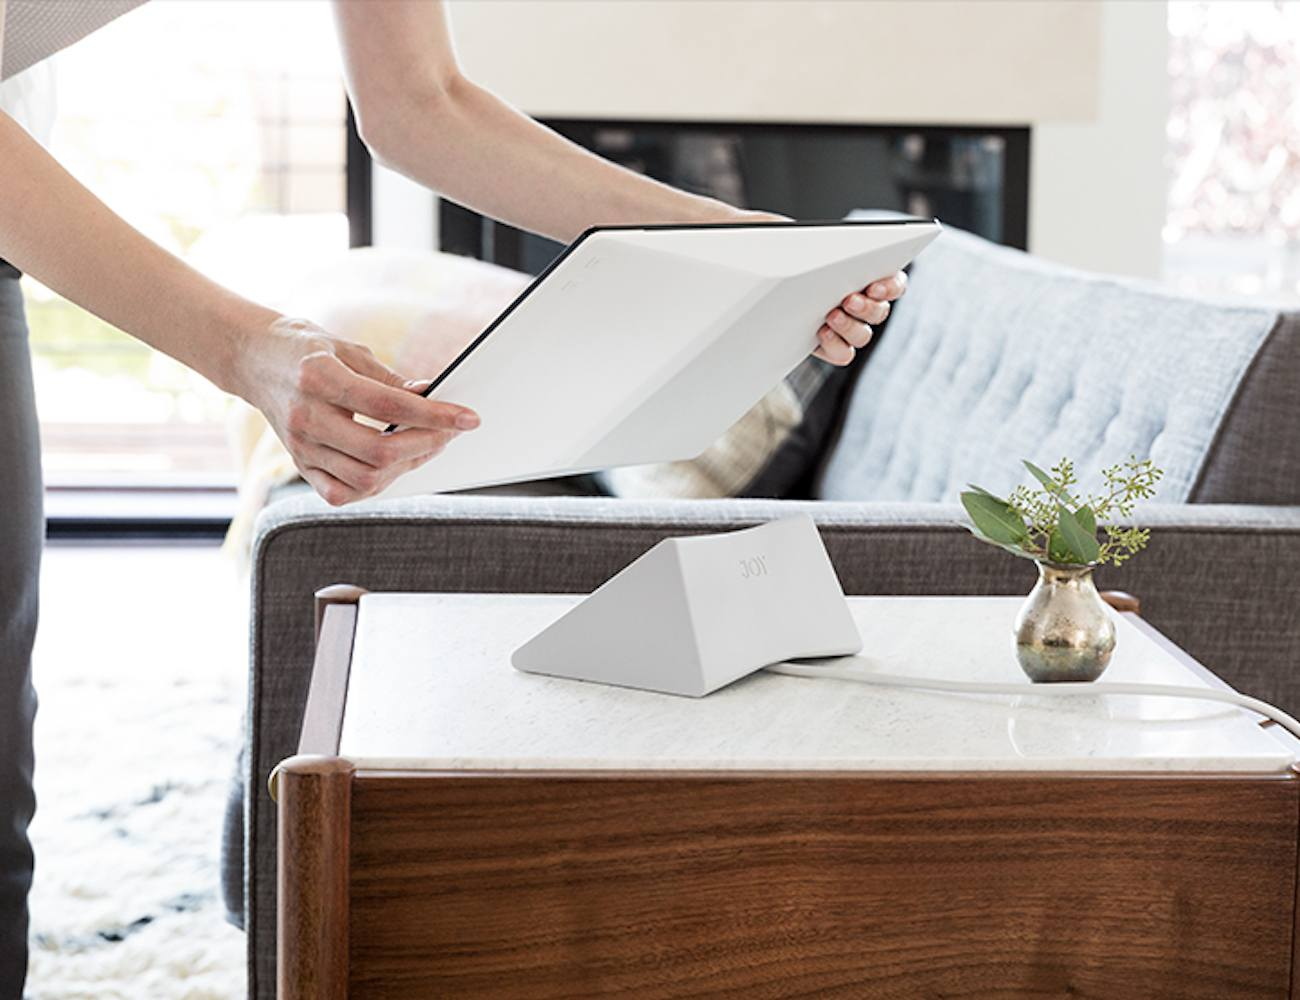 Interactive Coffee Table Joy Interactive Photo Album Review The Gadget Flow